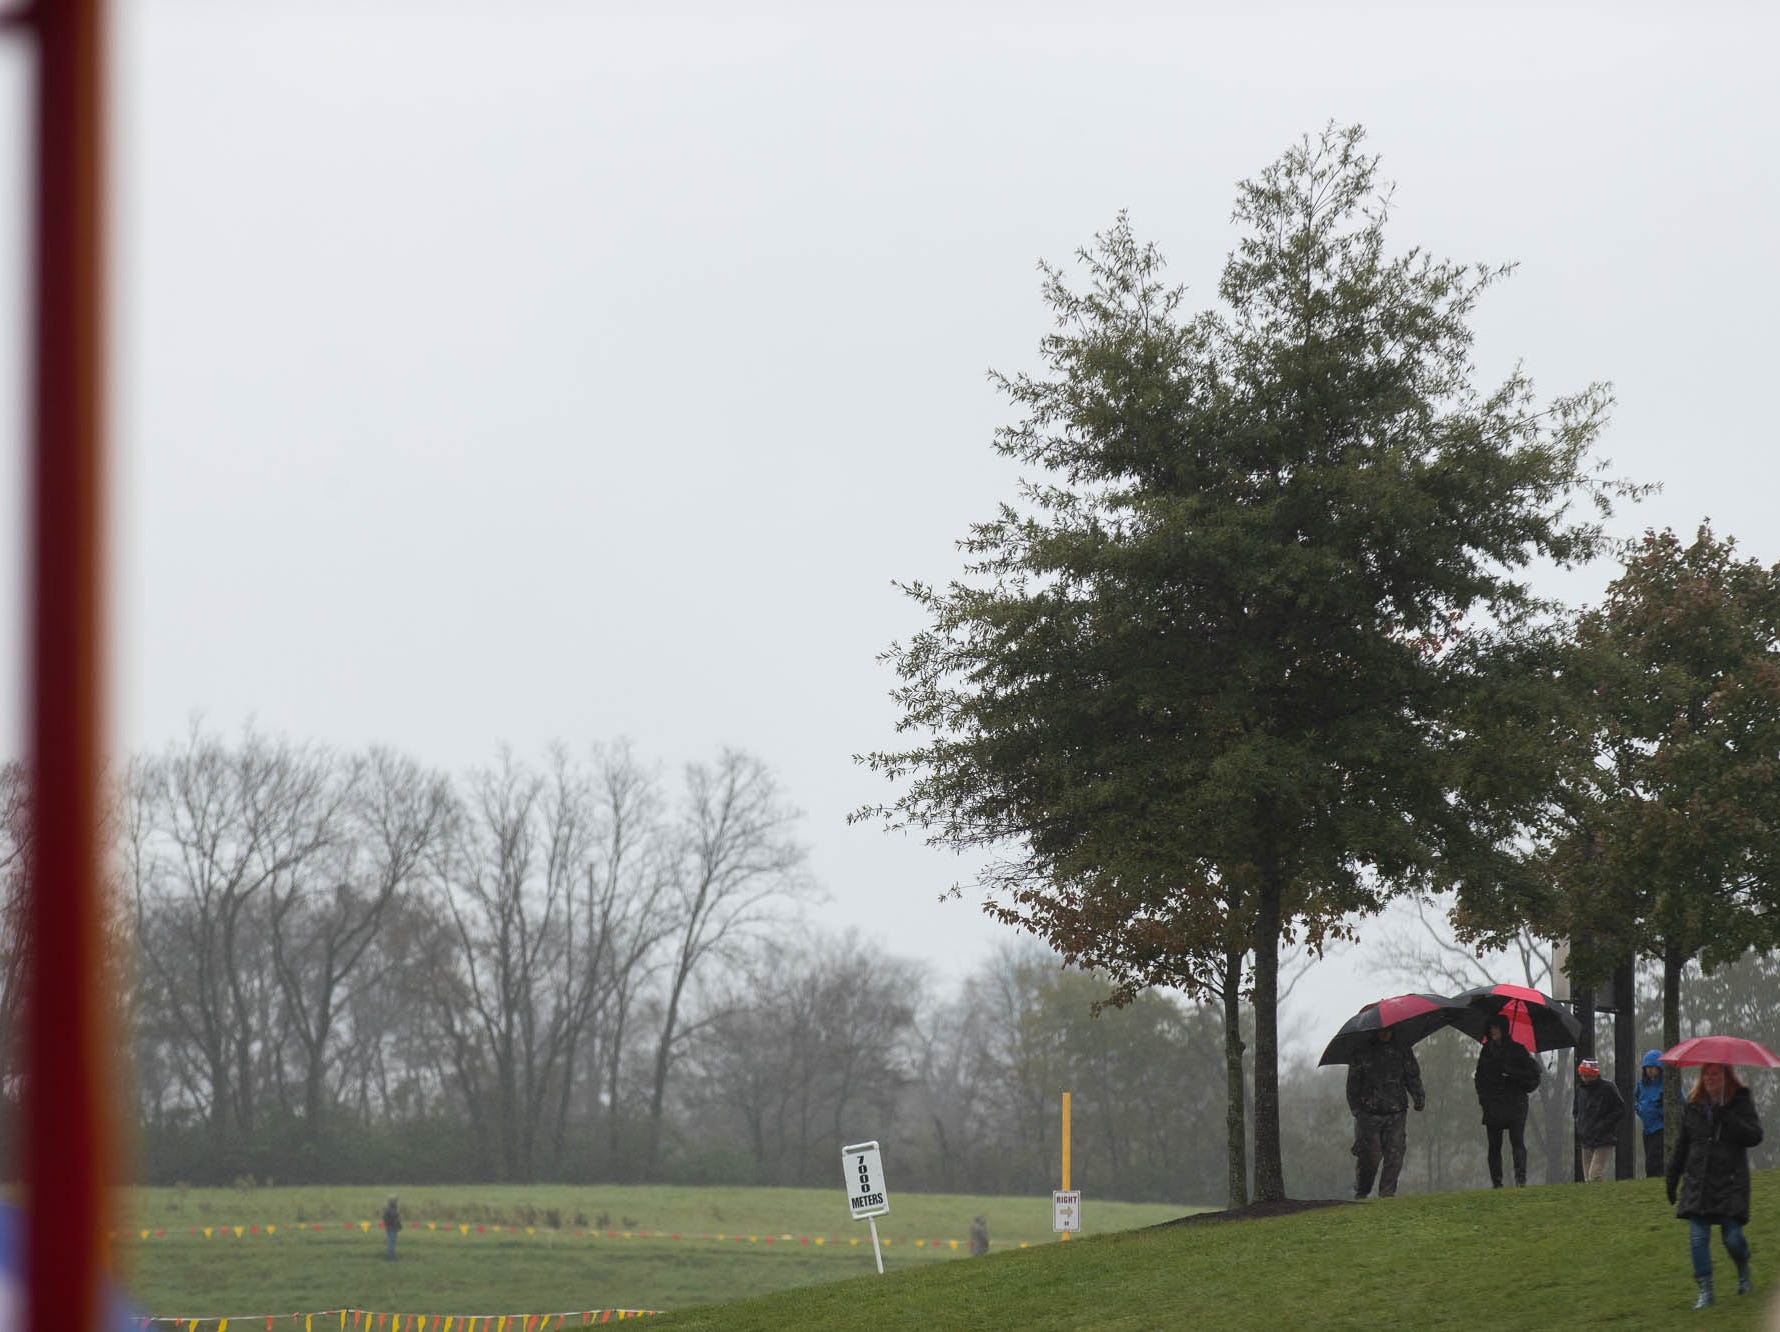 Spectators watch under umbrellas during the PIAA District III Cross Country Championship, Saturday, Oct. 27, 2018, at Big Spring High School in Newville.